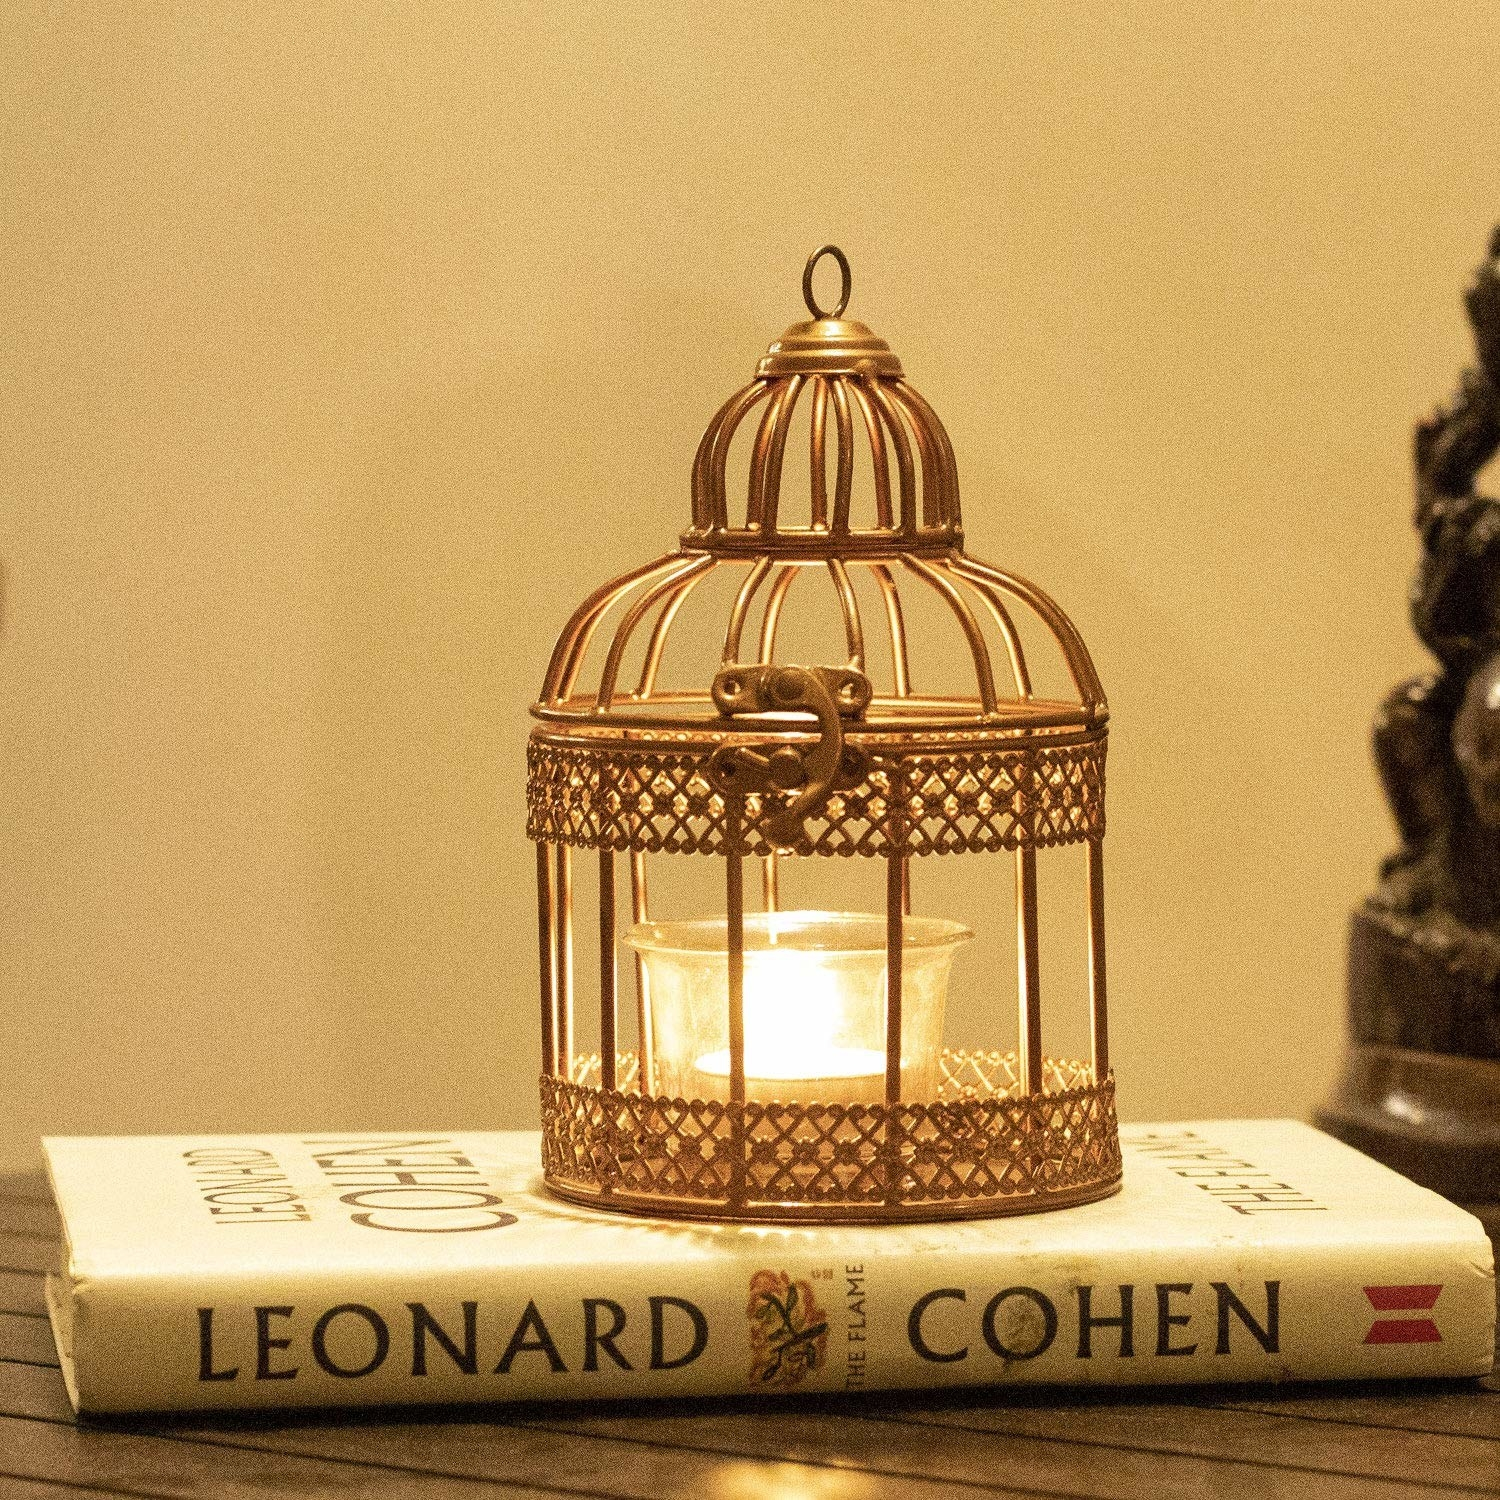 A golden bird cage on top of a book